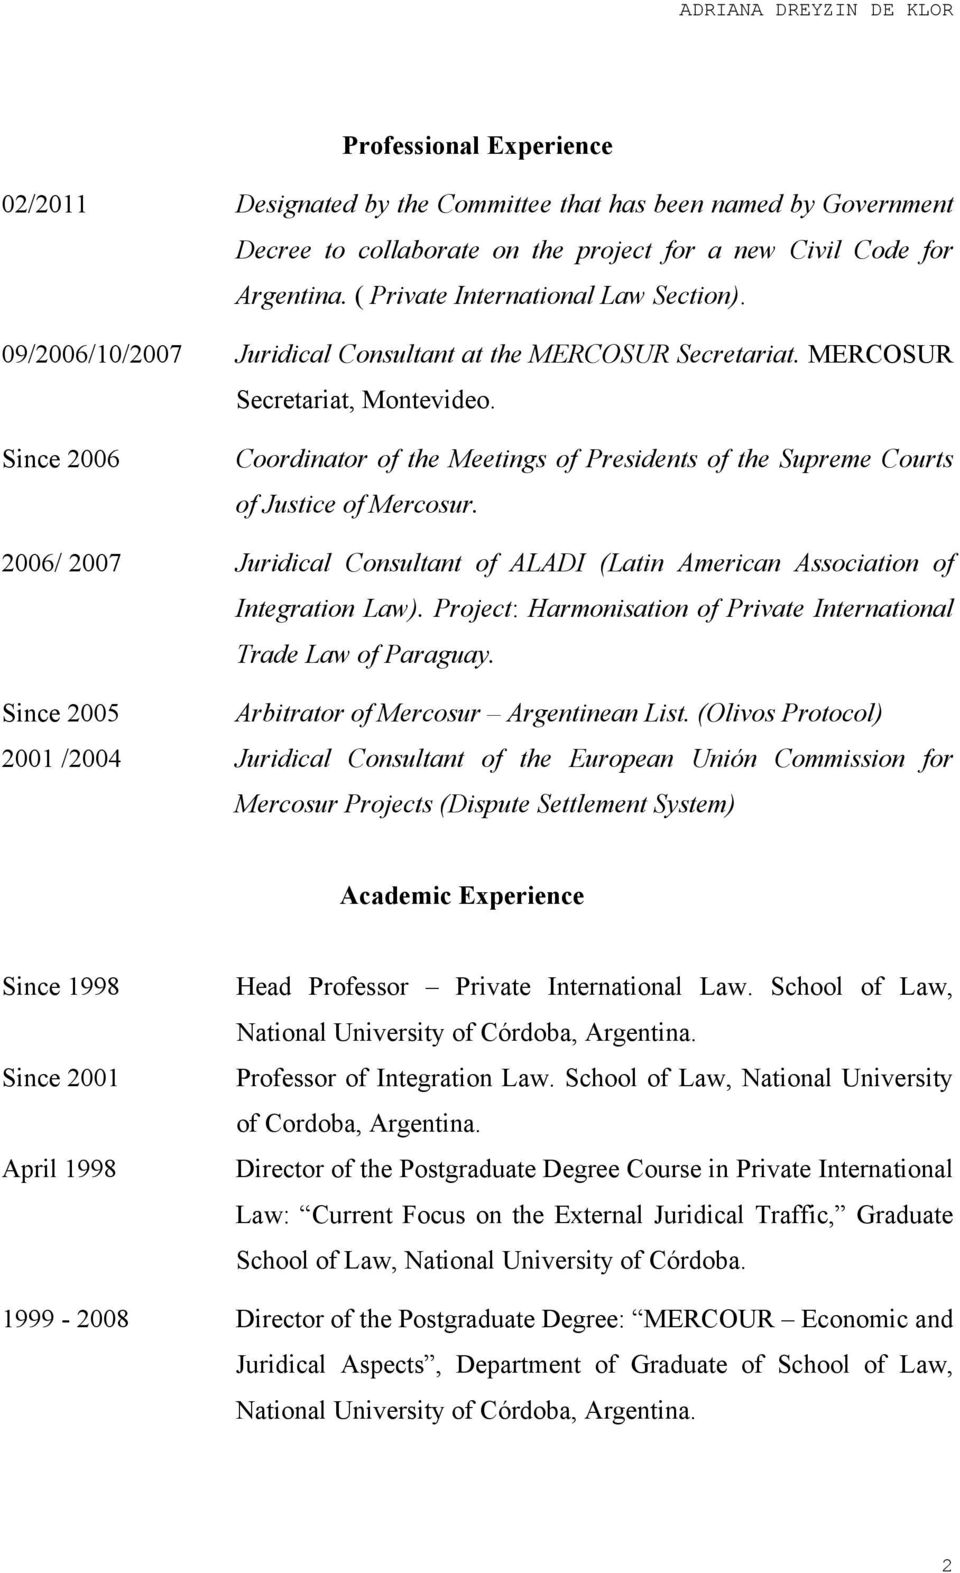 Since 2006 Coordinator of the Meetings of Presidents of the Supreme Courts of Justice of Mercosur. 2006/ 2007 Juridical Consultant of ALADI (Latin American Association of Integration Law).